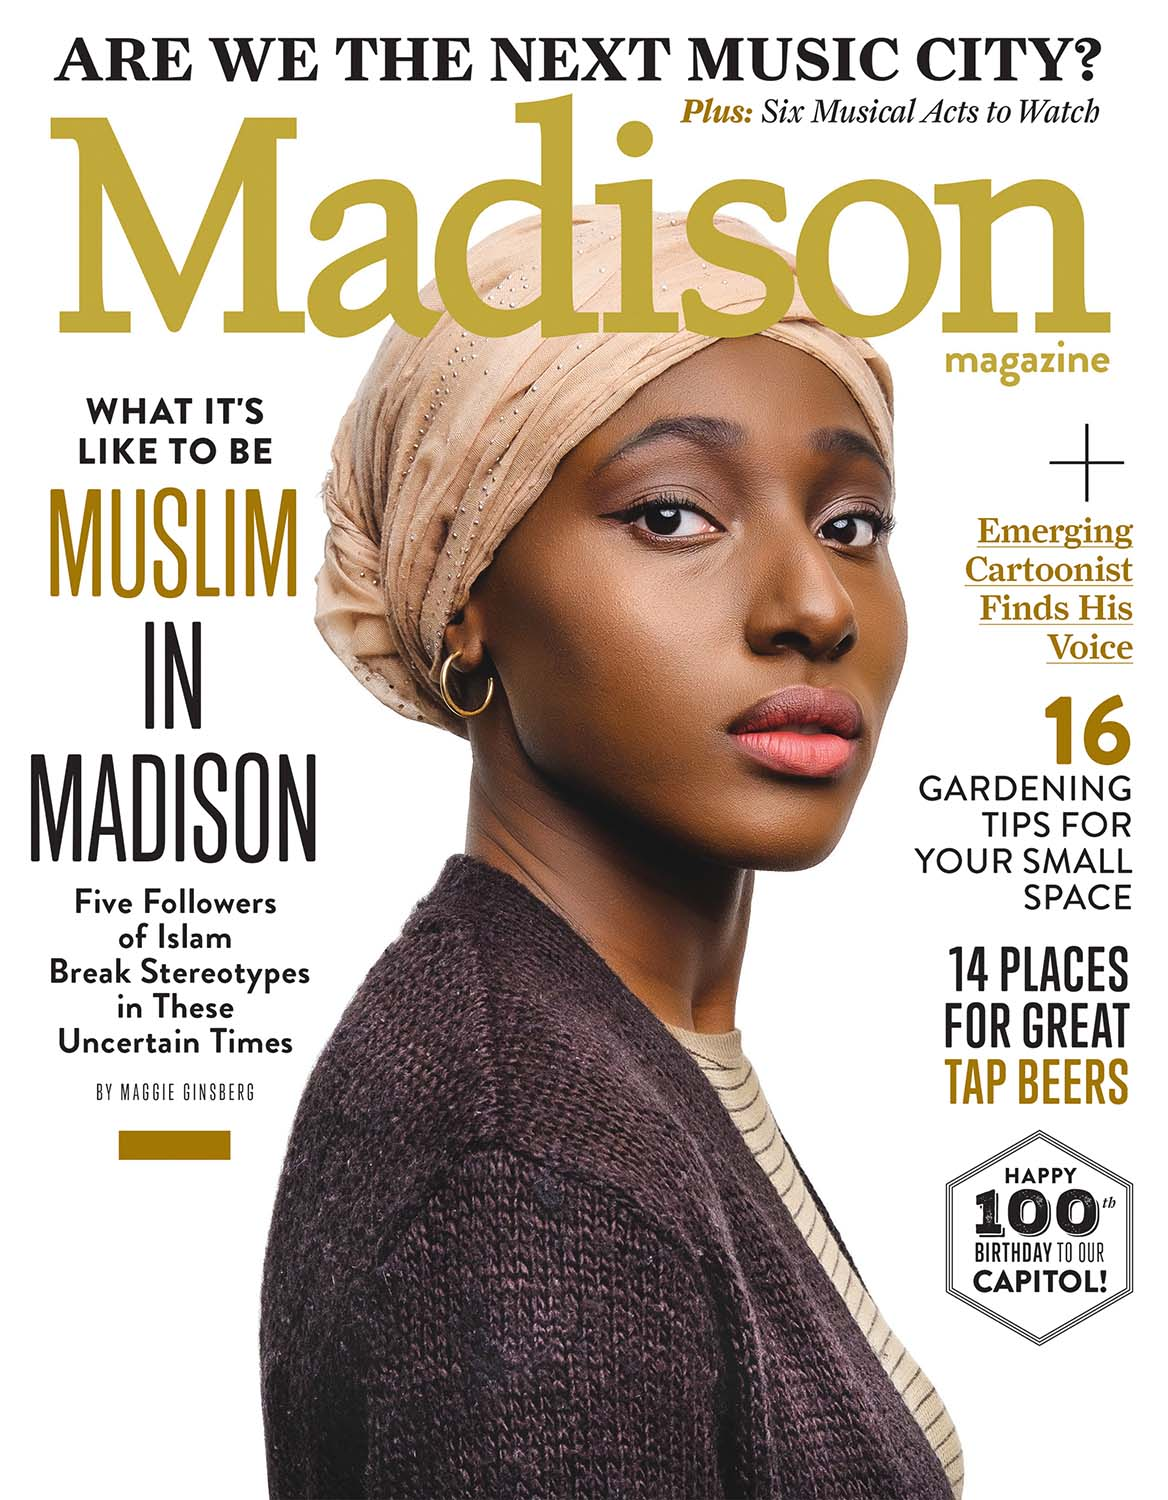 dramatic portrait of a Muslim woman Fatoumata Ceesay photographed for Madison Magazine 2017